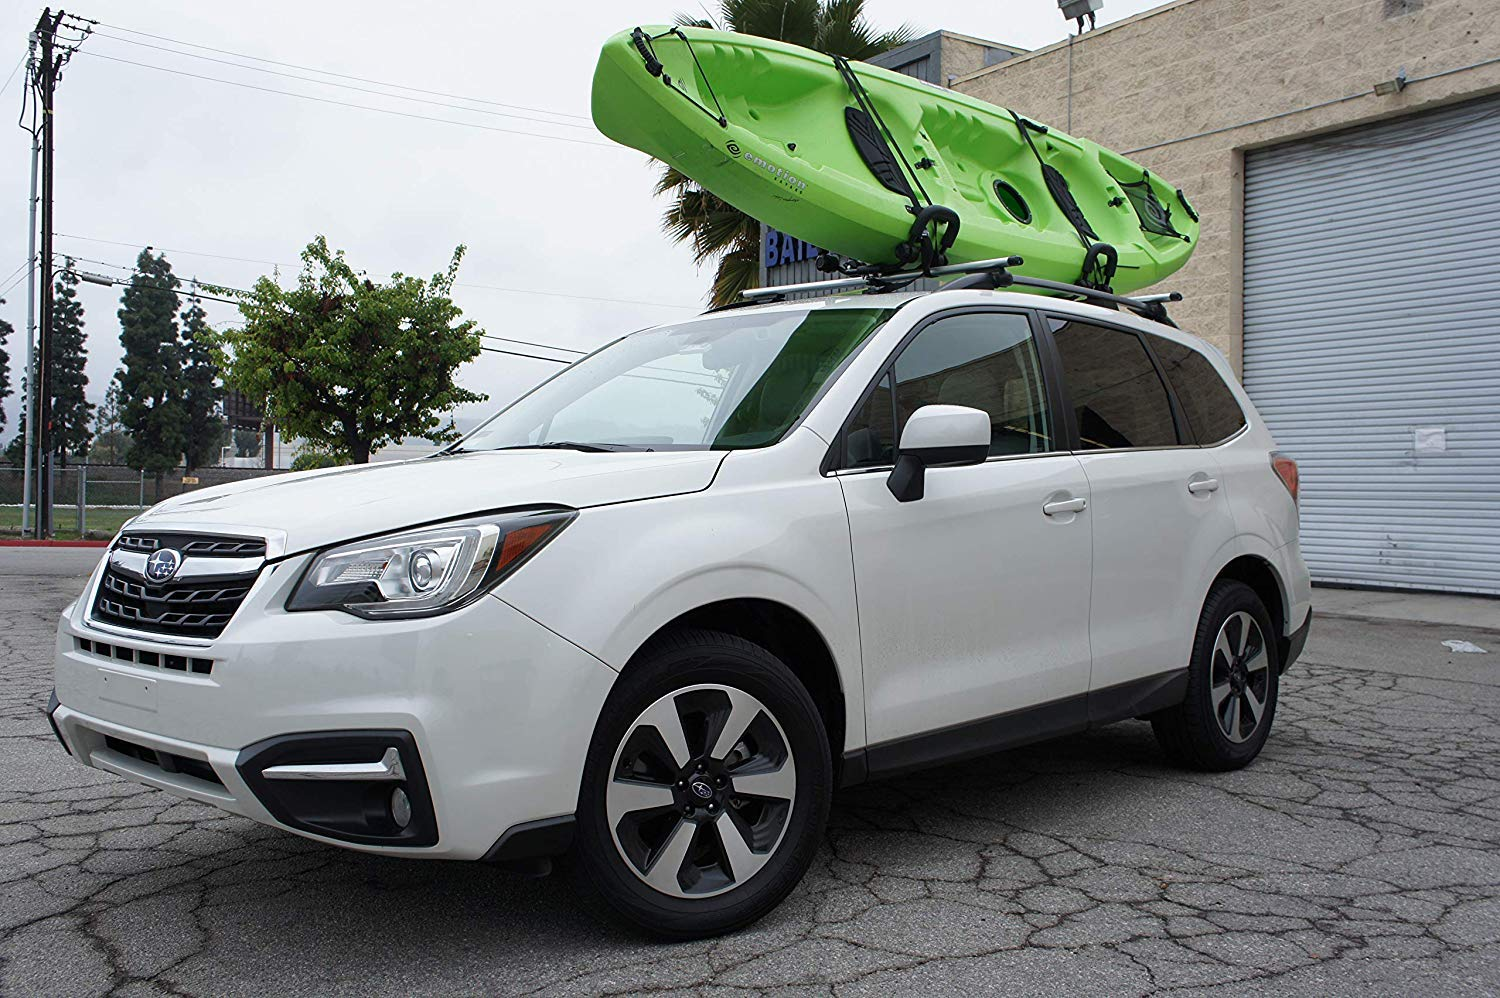 Car Rack & Carrier Universal Kayak Carrier Car Roof Rack Set of Two J-Shape Foldable Carrier for Canoe, SUP and Kayaks Mounted on Your SUV, Fits Most Size Crossbar (1 Pair)